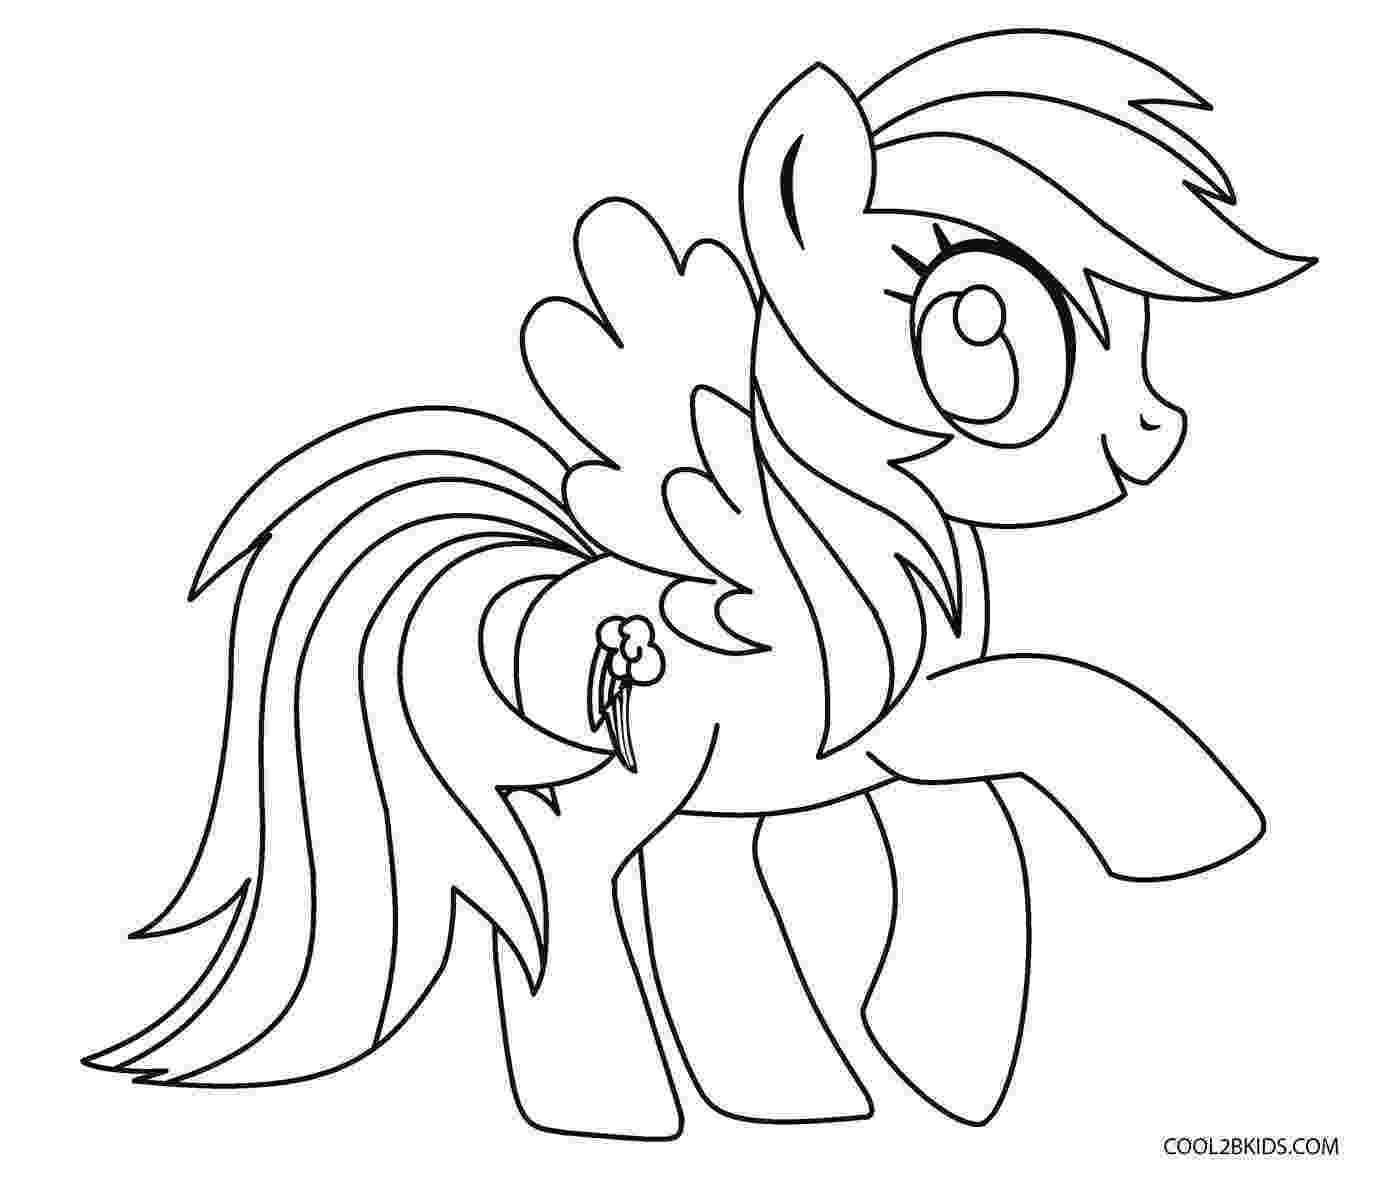 coloring pages of my little pony my little pony coloring pages team colors coloring pages little of pony my